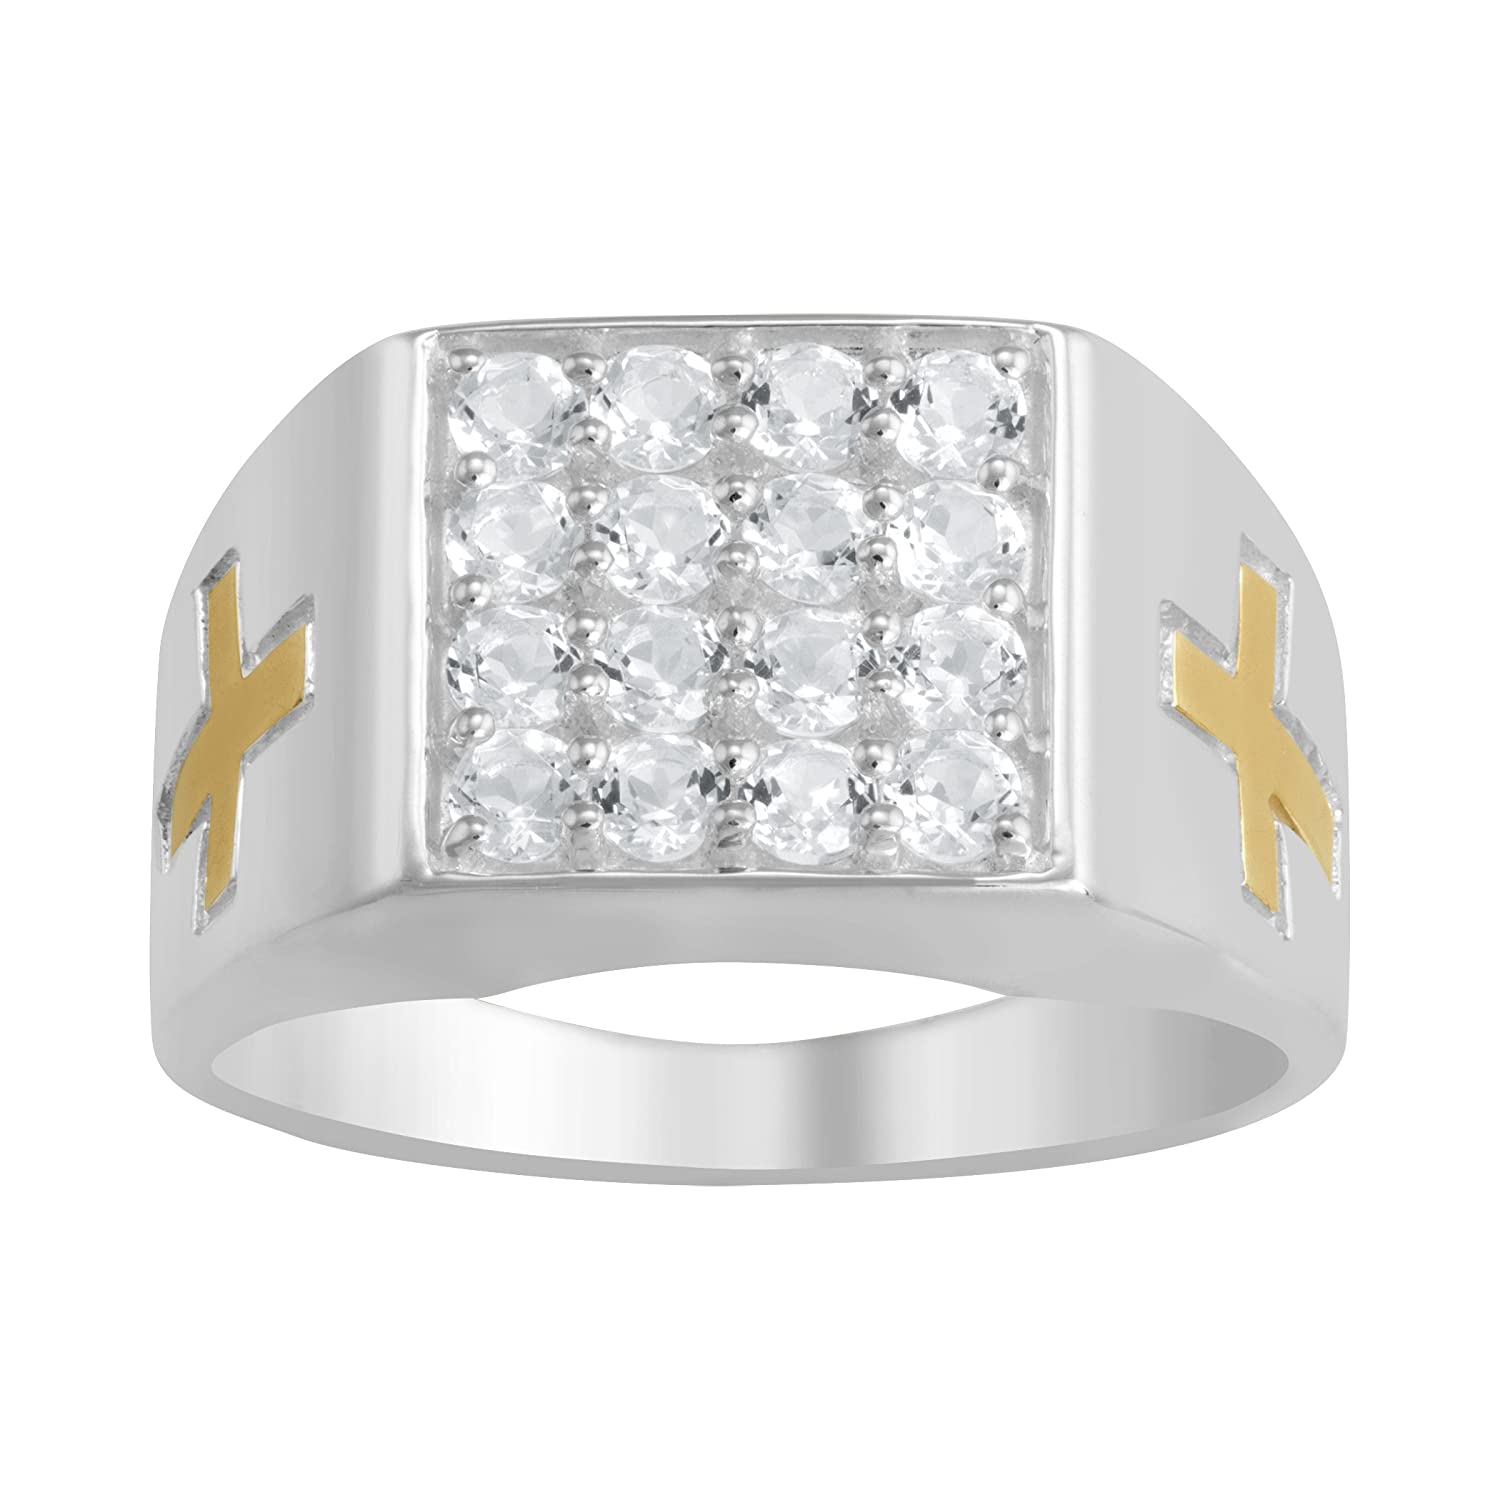 ArtCarved Our Lord White Genuine Topaz Christian Men's Ring, Sterling Silver